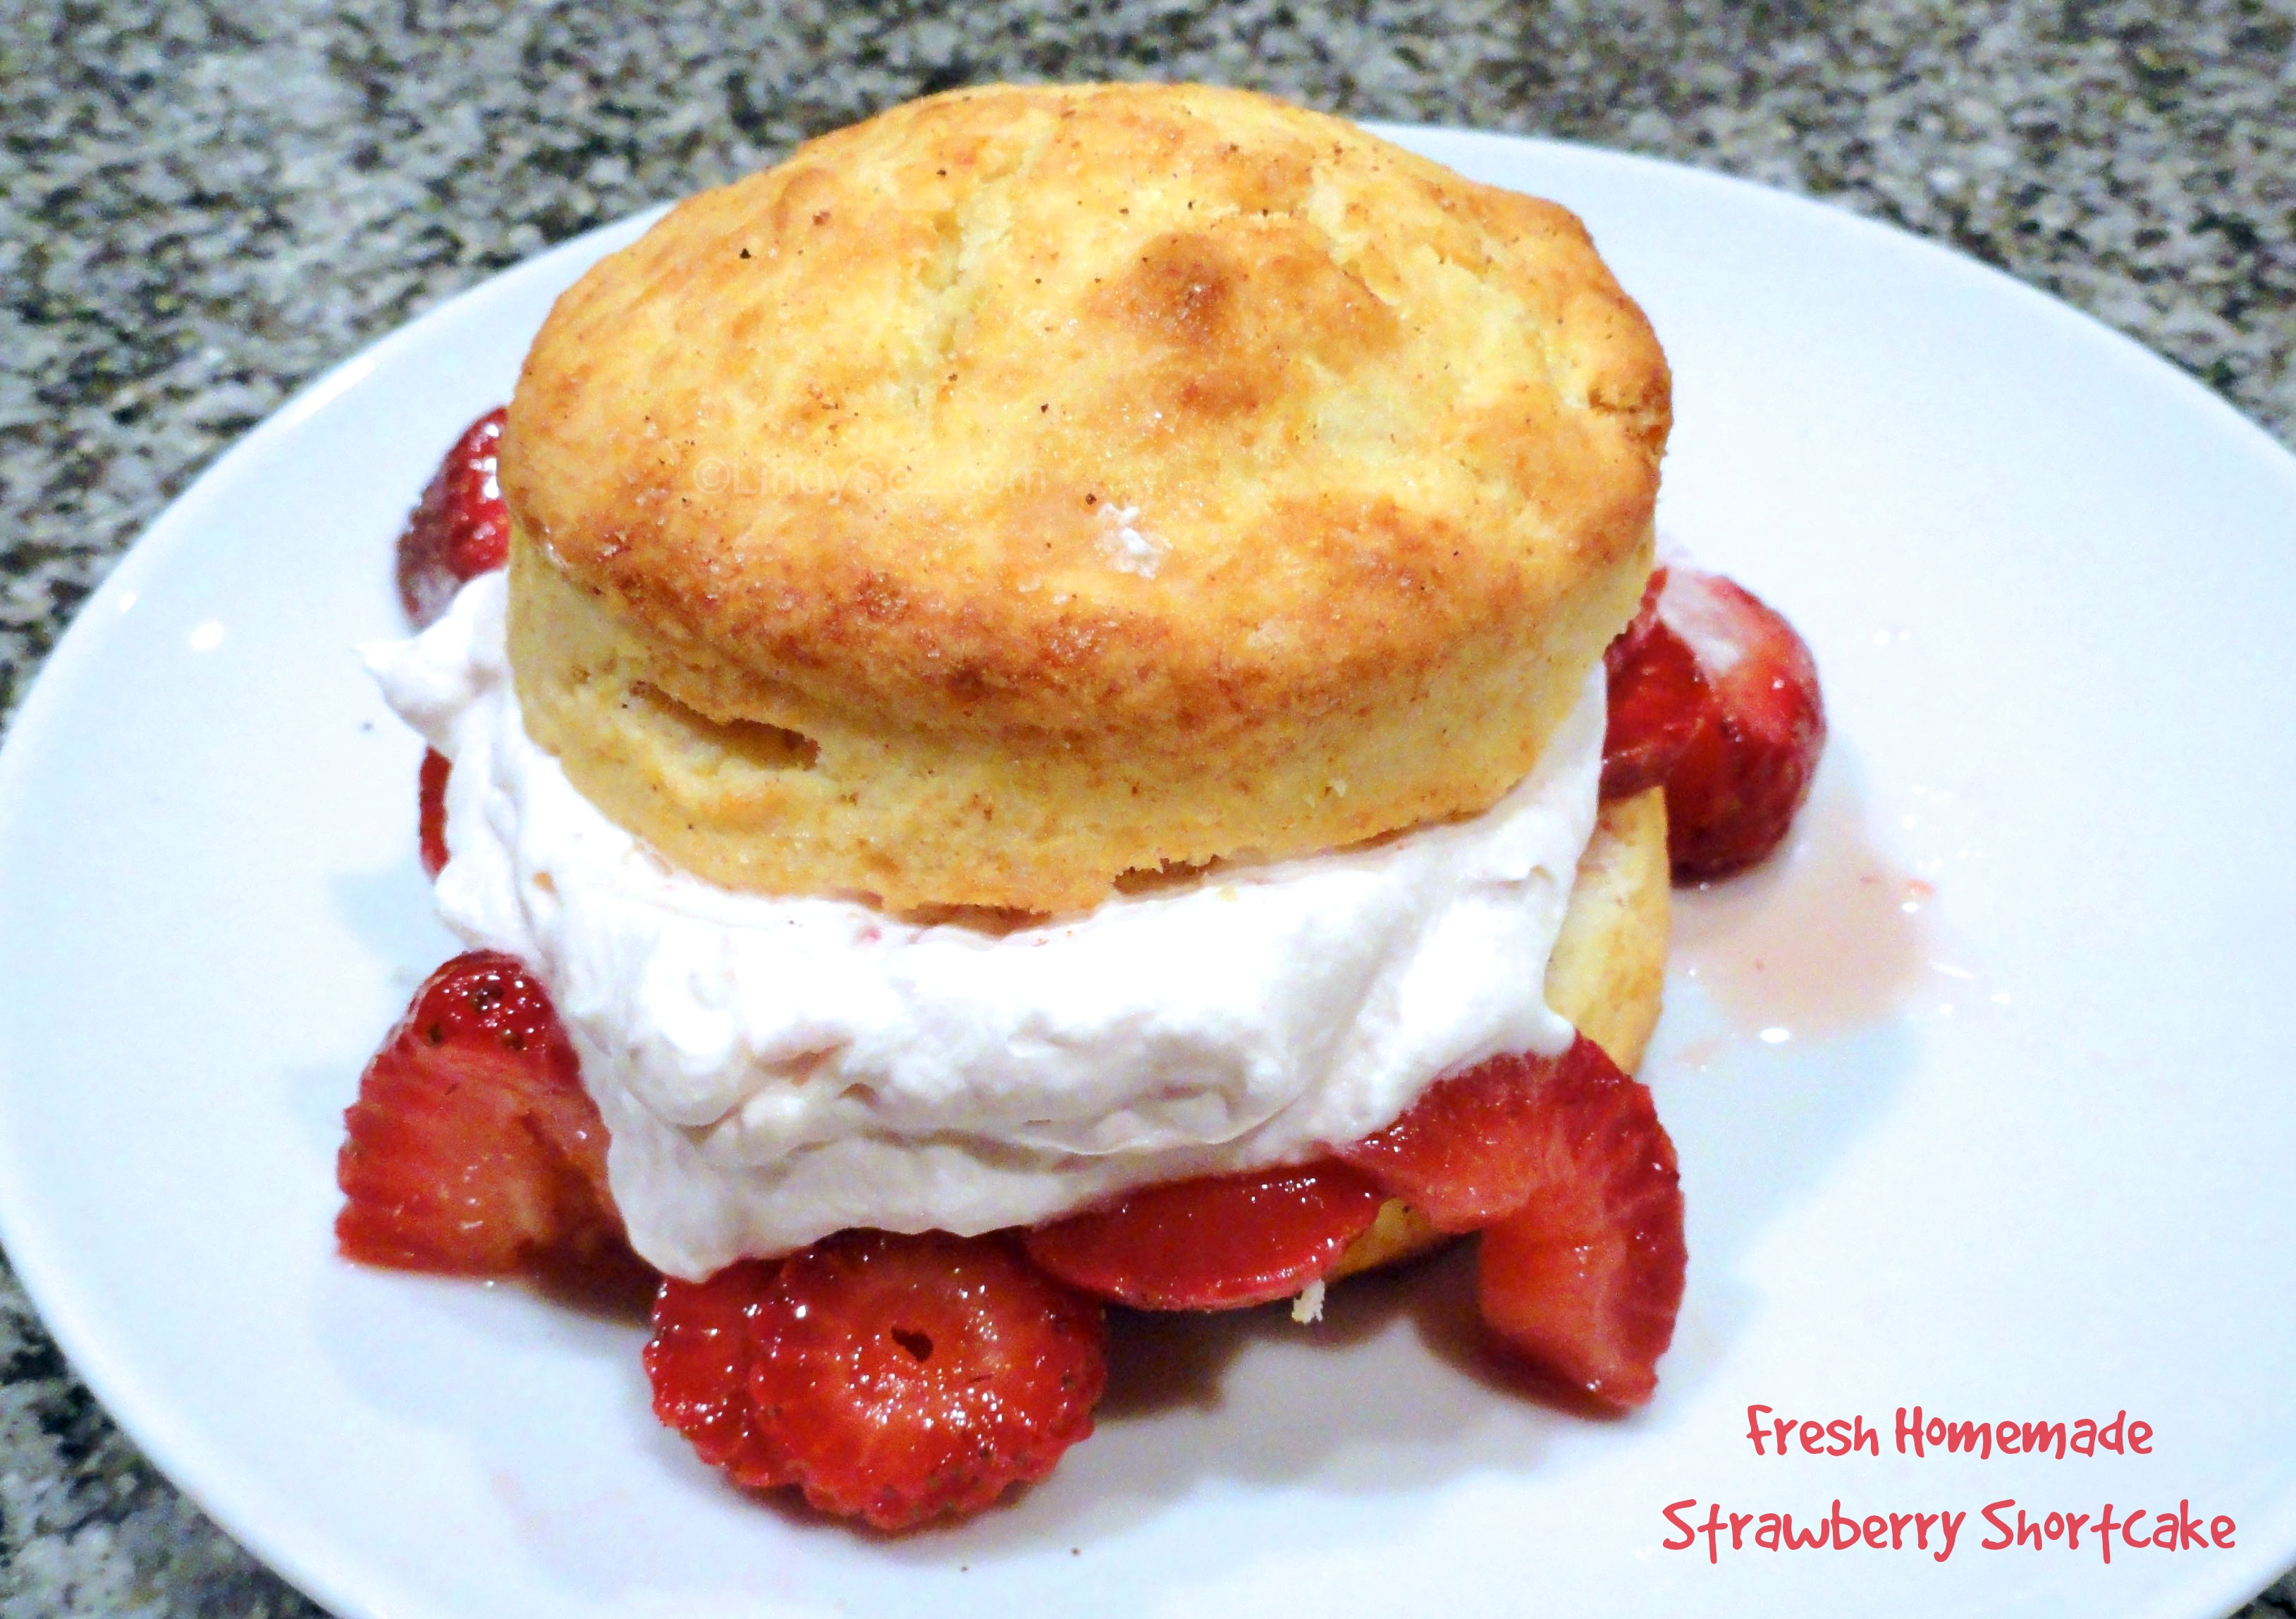 Fresh Homemade Strawberry Shortcake